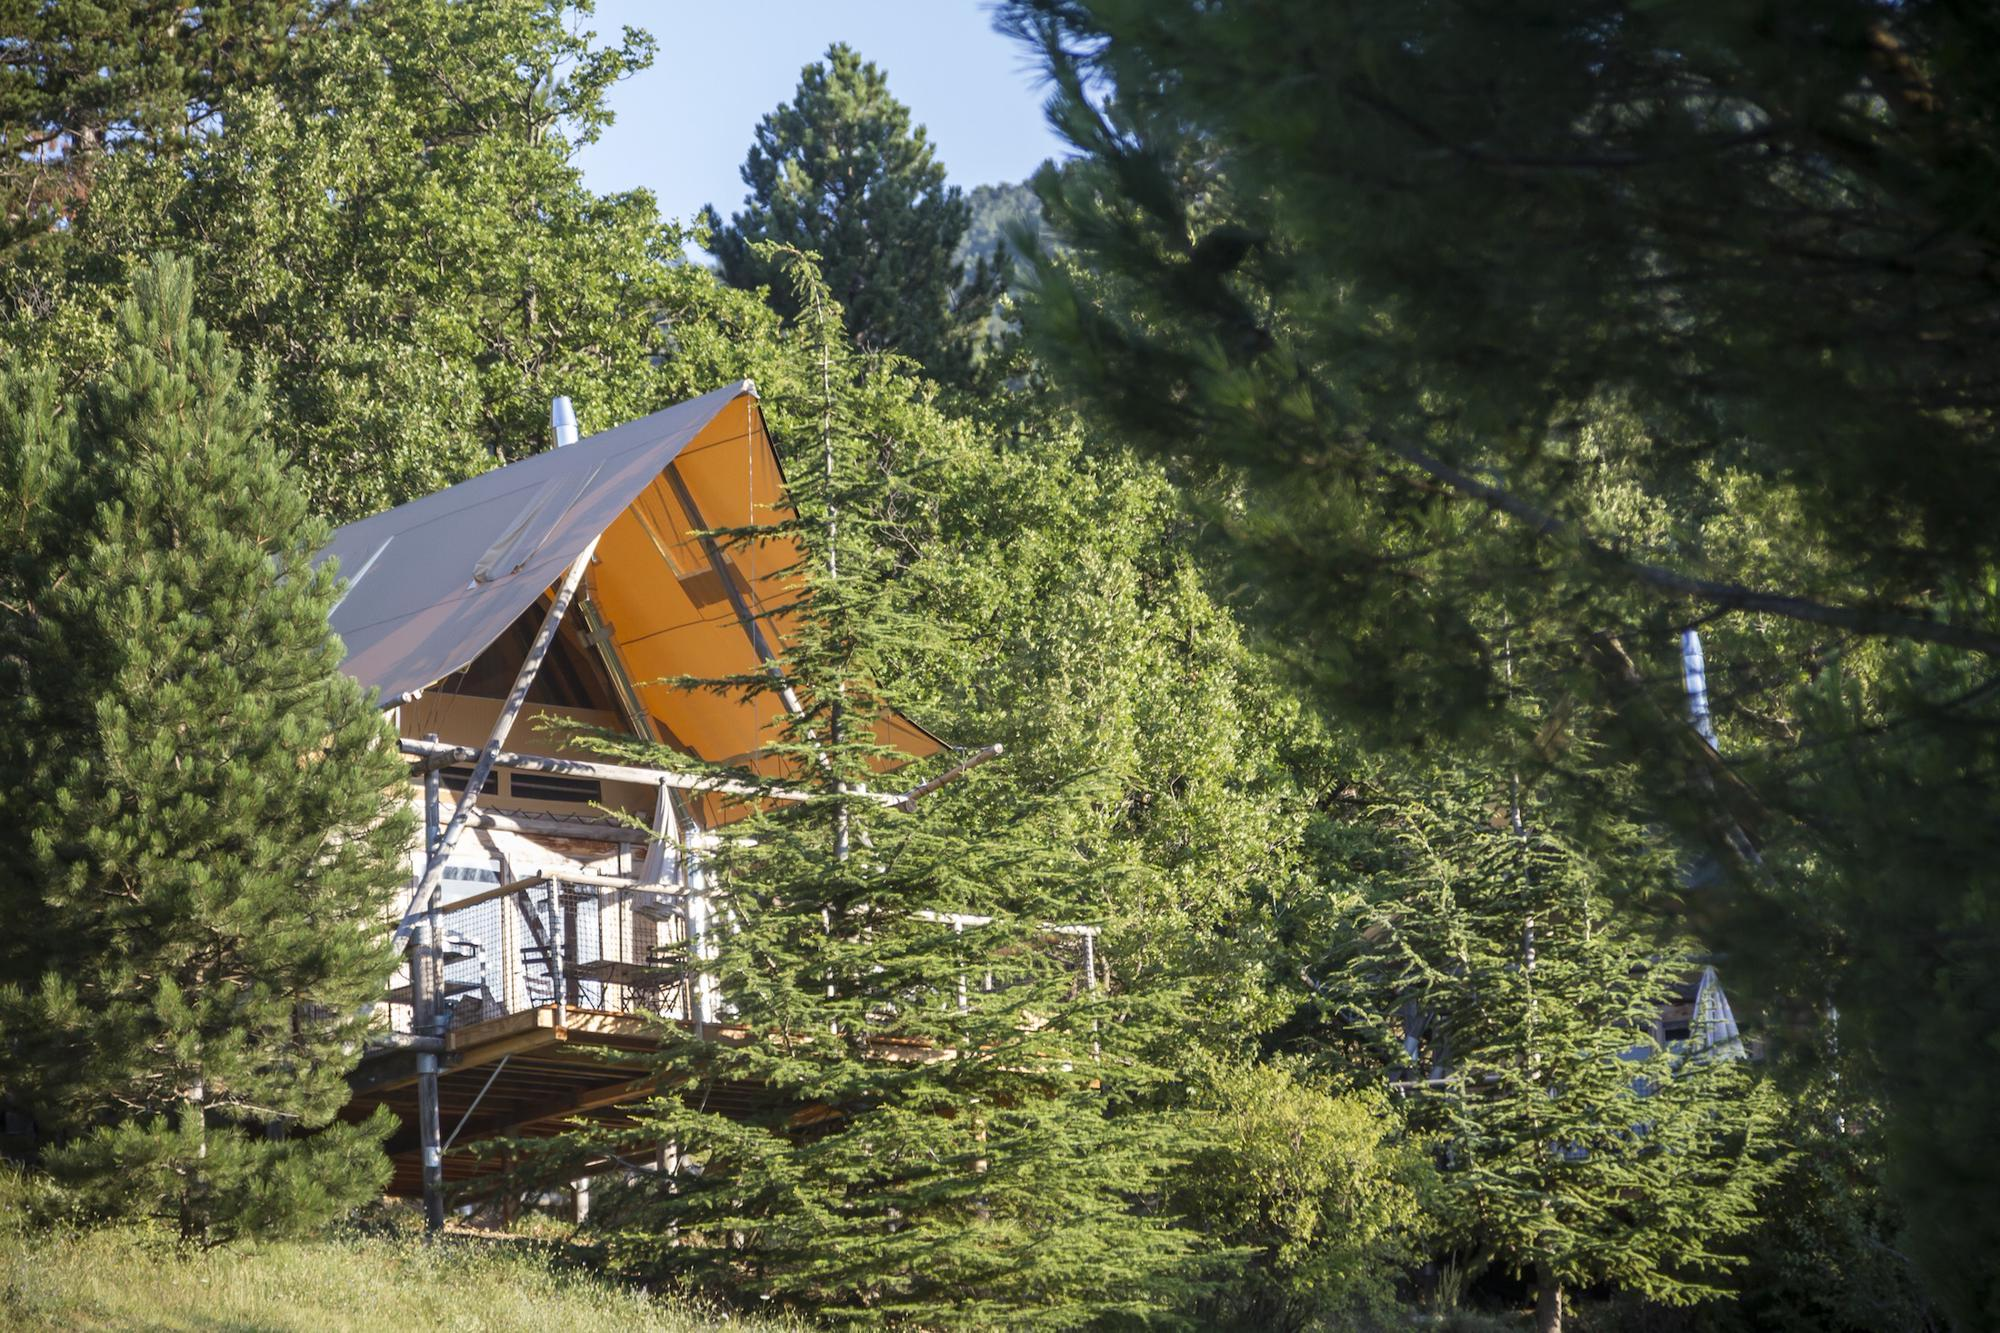 Glamping in Drôme | Best Glamping Sites in Drôme, France